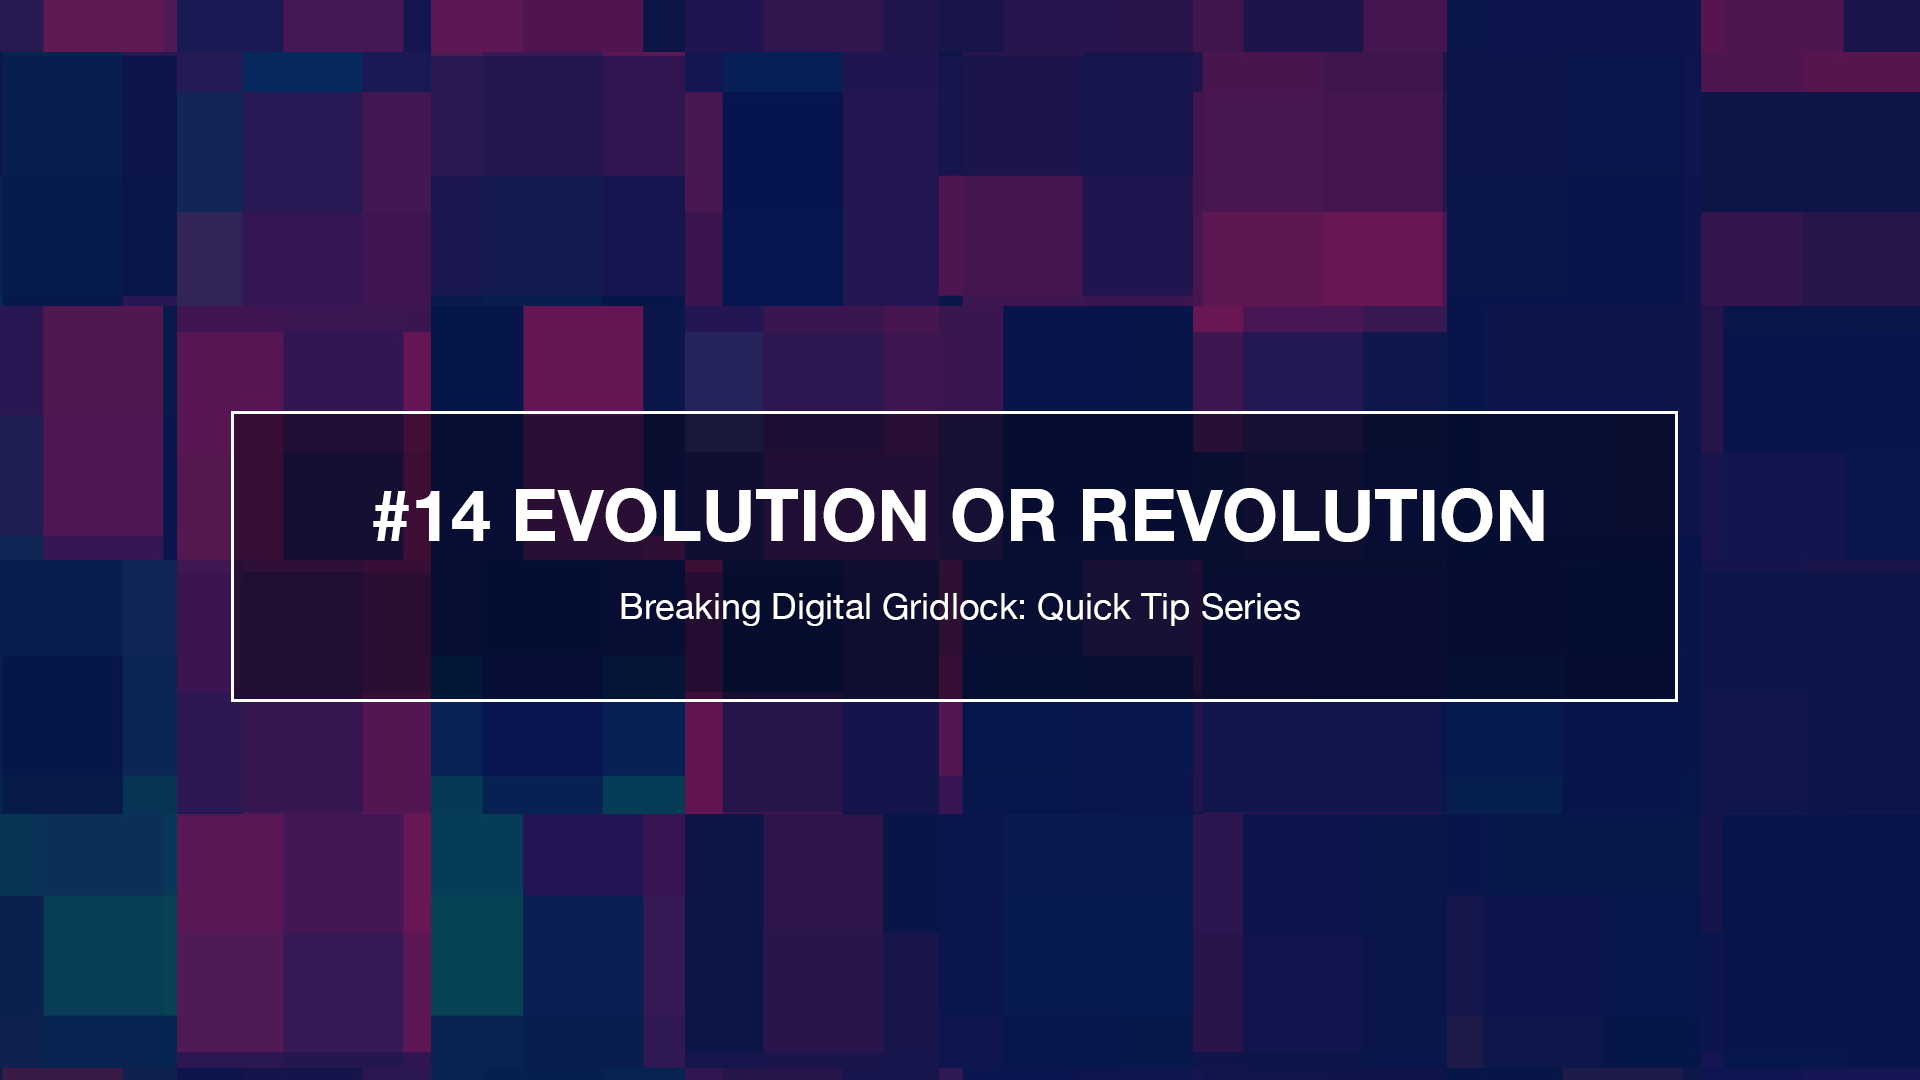 Breaking Weekly Digital Gridlock Tip #14: Revolutionary or Evolutionary